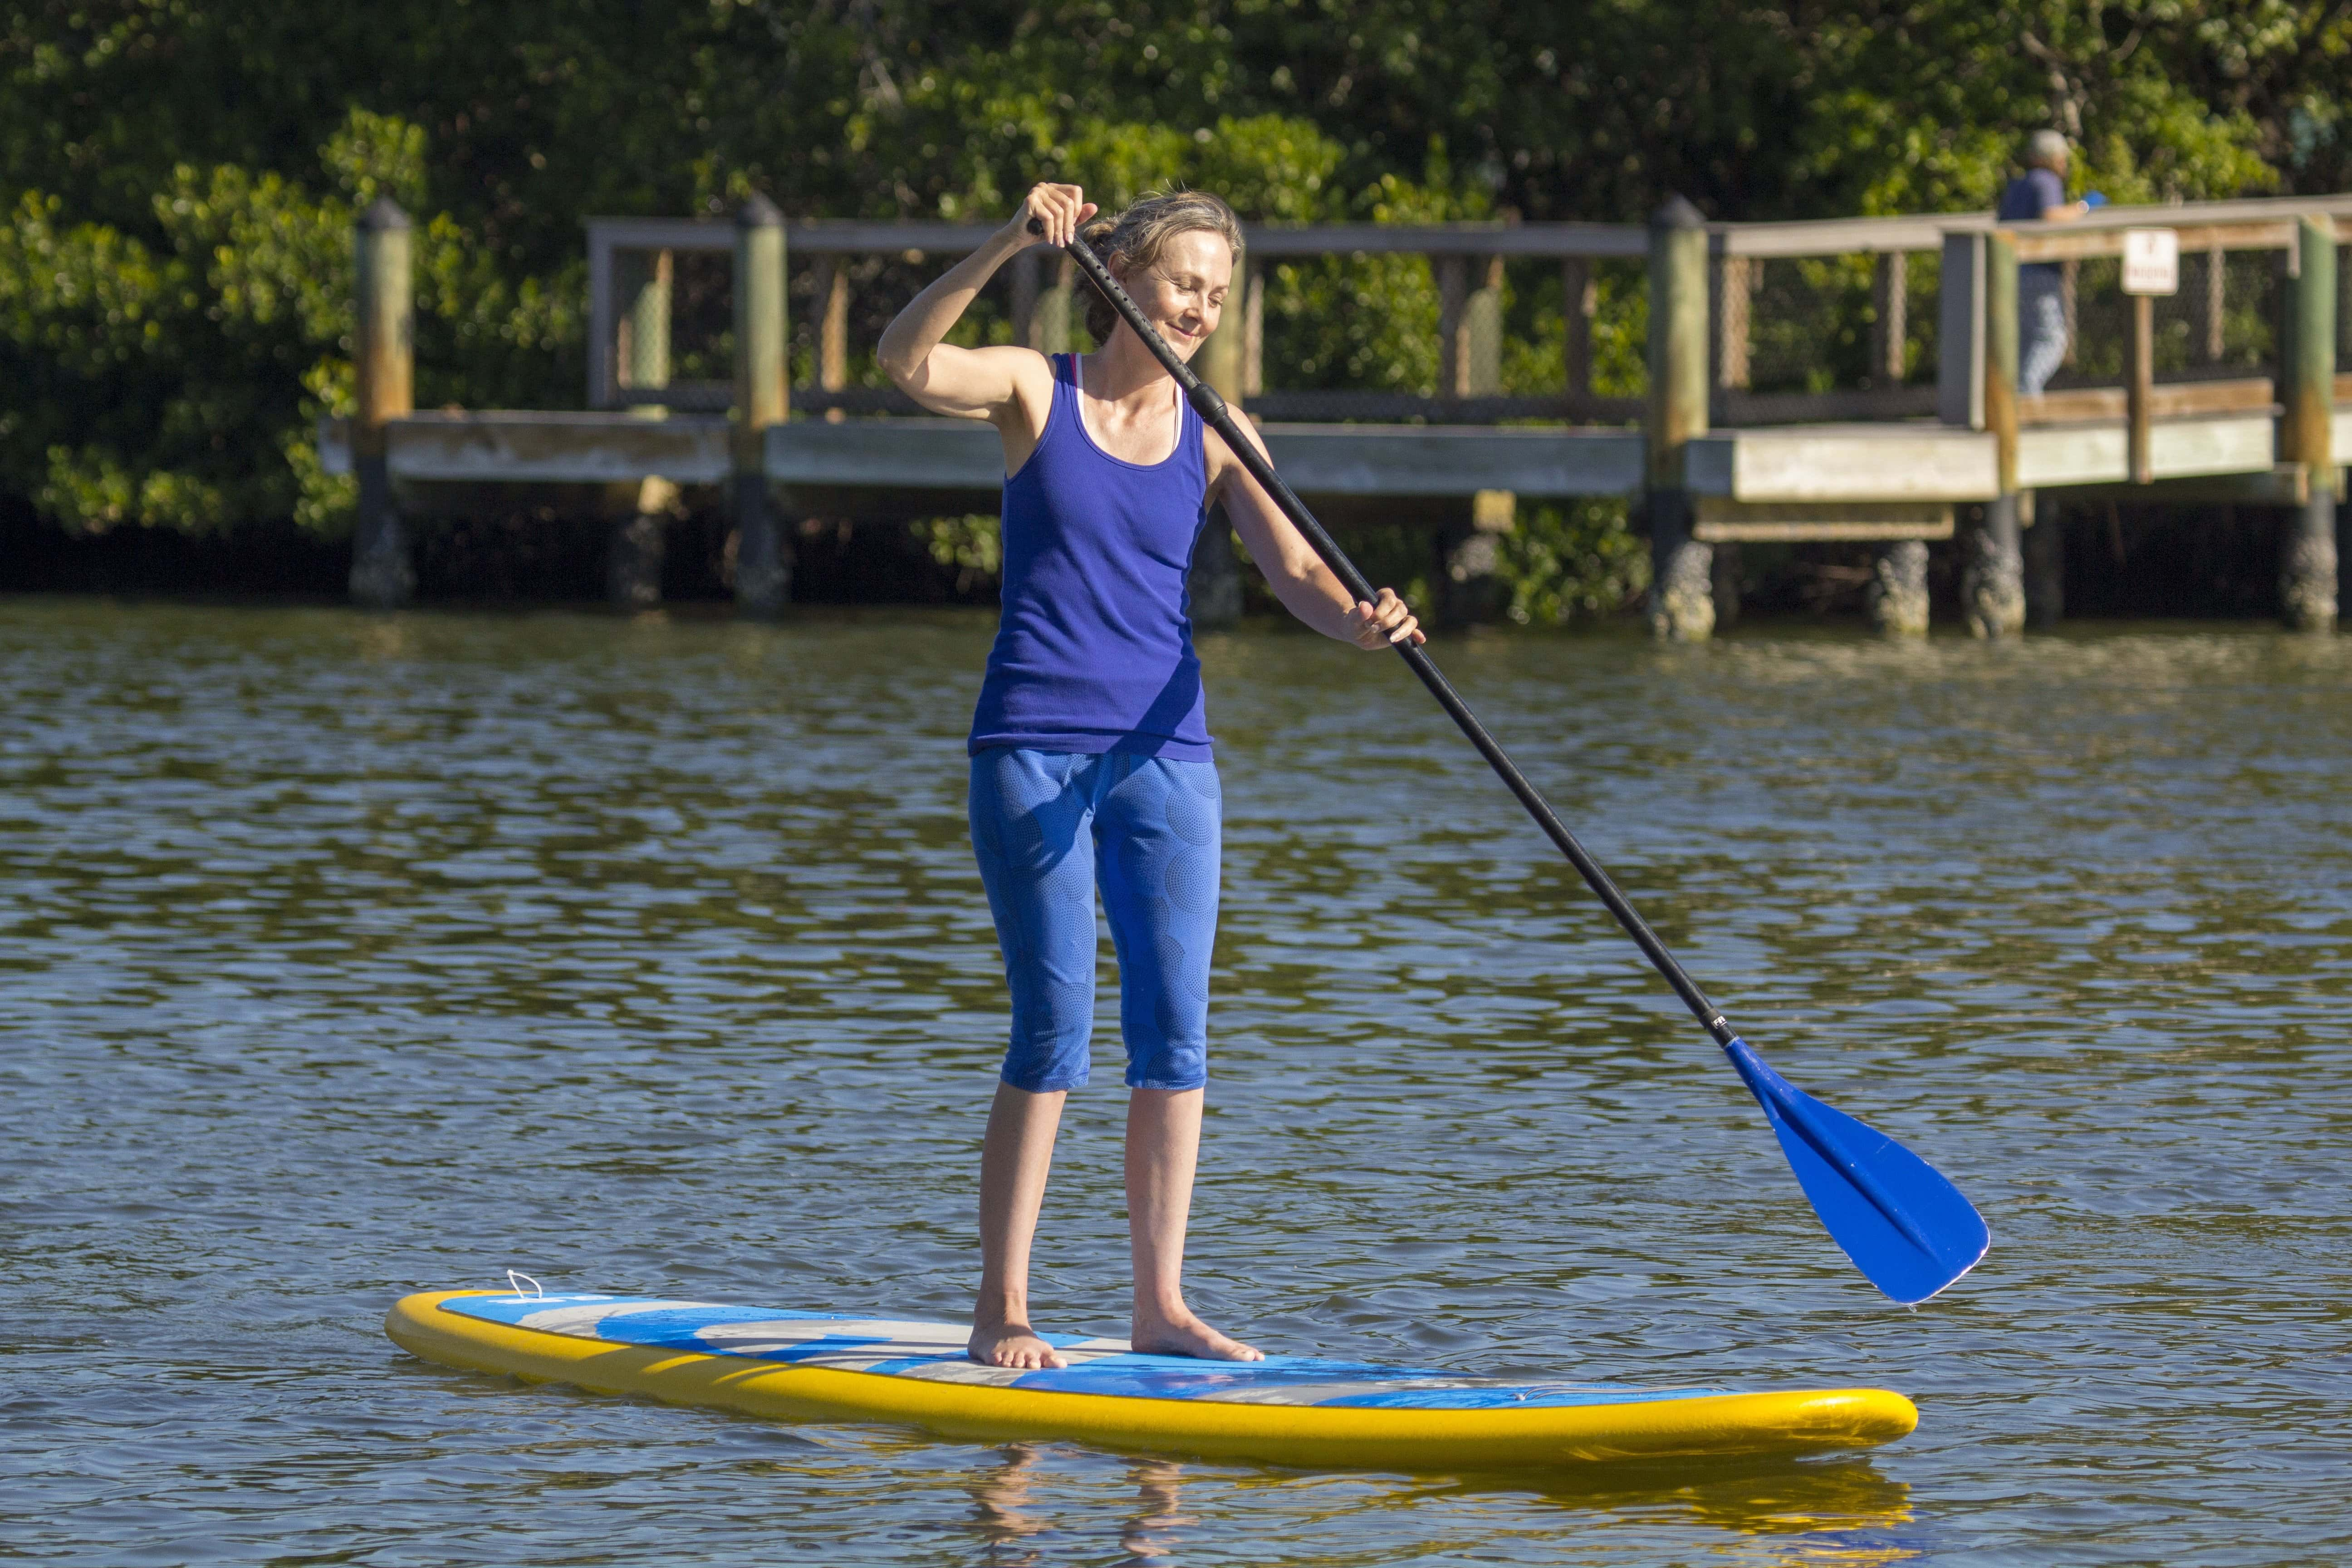 paddle boards, siesta key paddle boards, siesta key rentals paddle boards, paddle board rentals